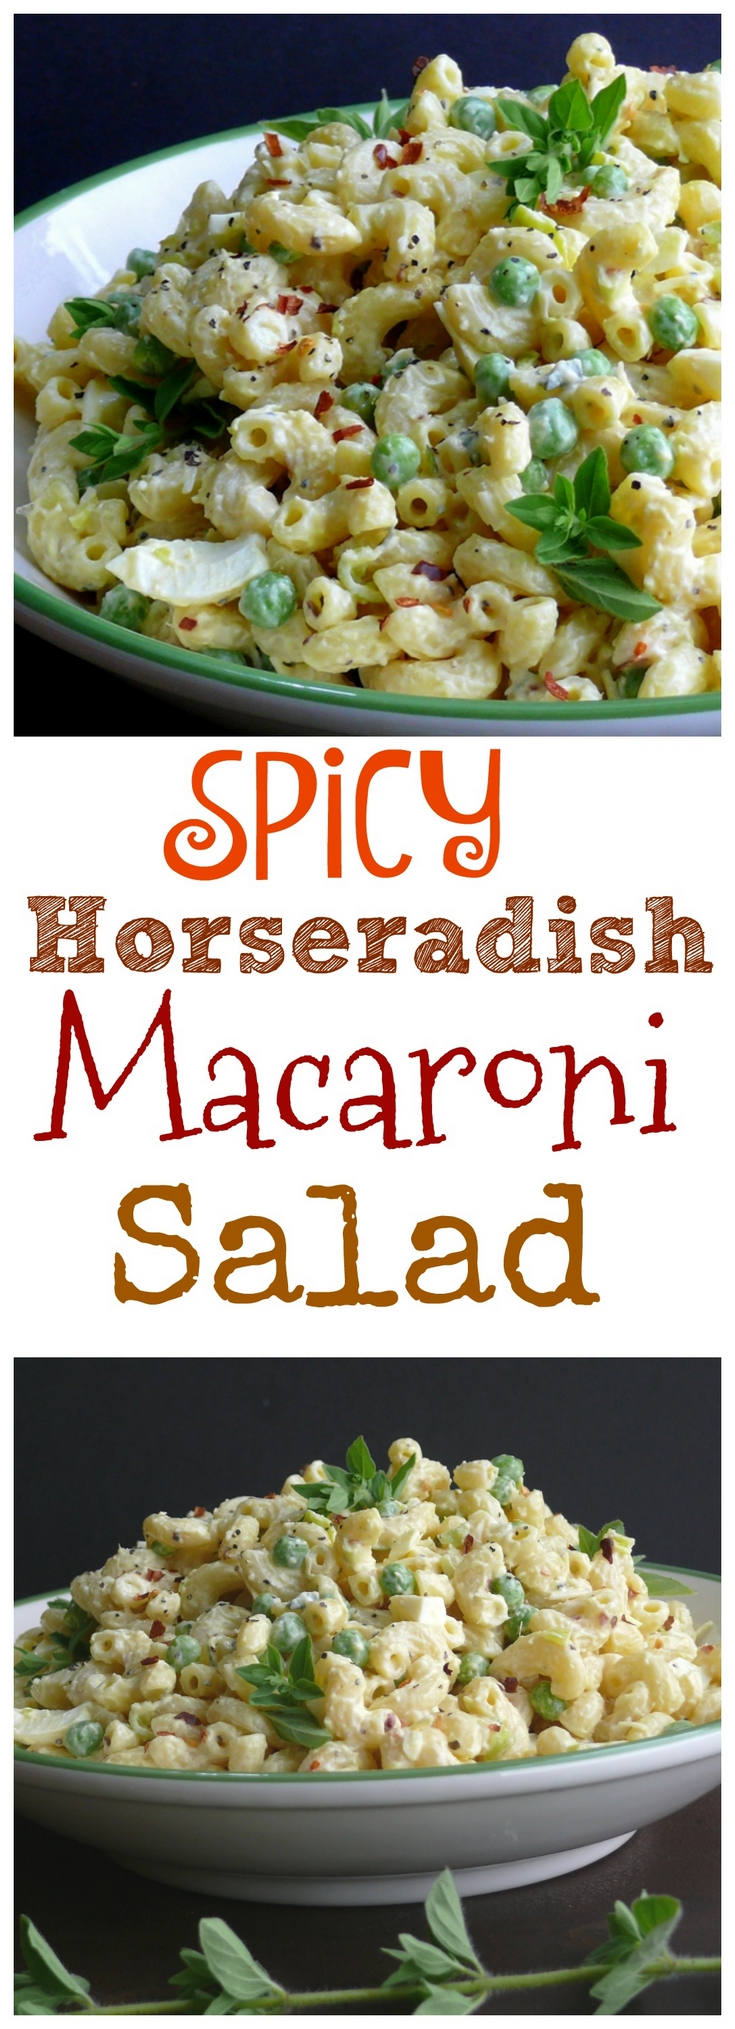 VIDEO + Recipe for this Spicy Horseradish Macaroni Salad. It is the perfect side dish for every gathering and will be especially welcome during grilling season. via @cmpollak1